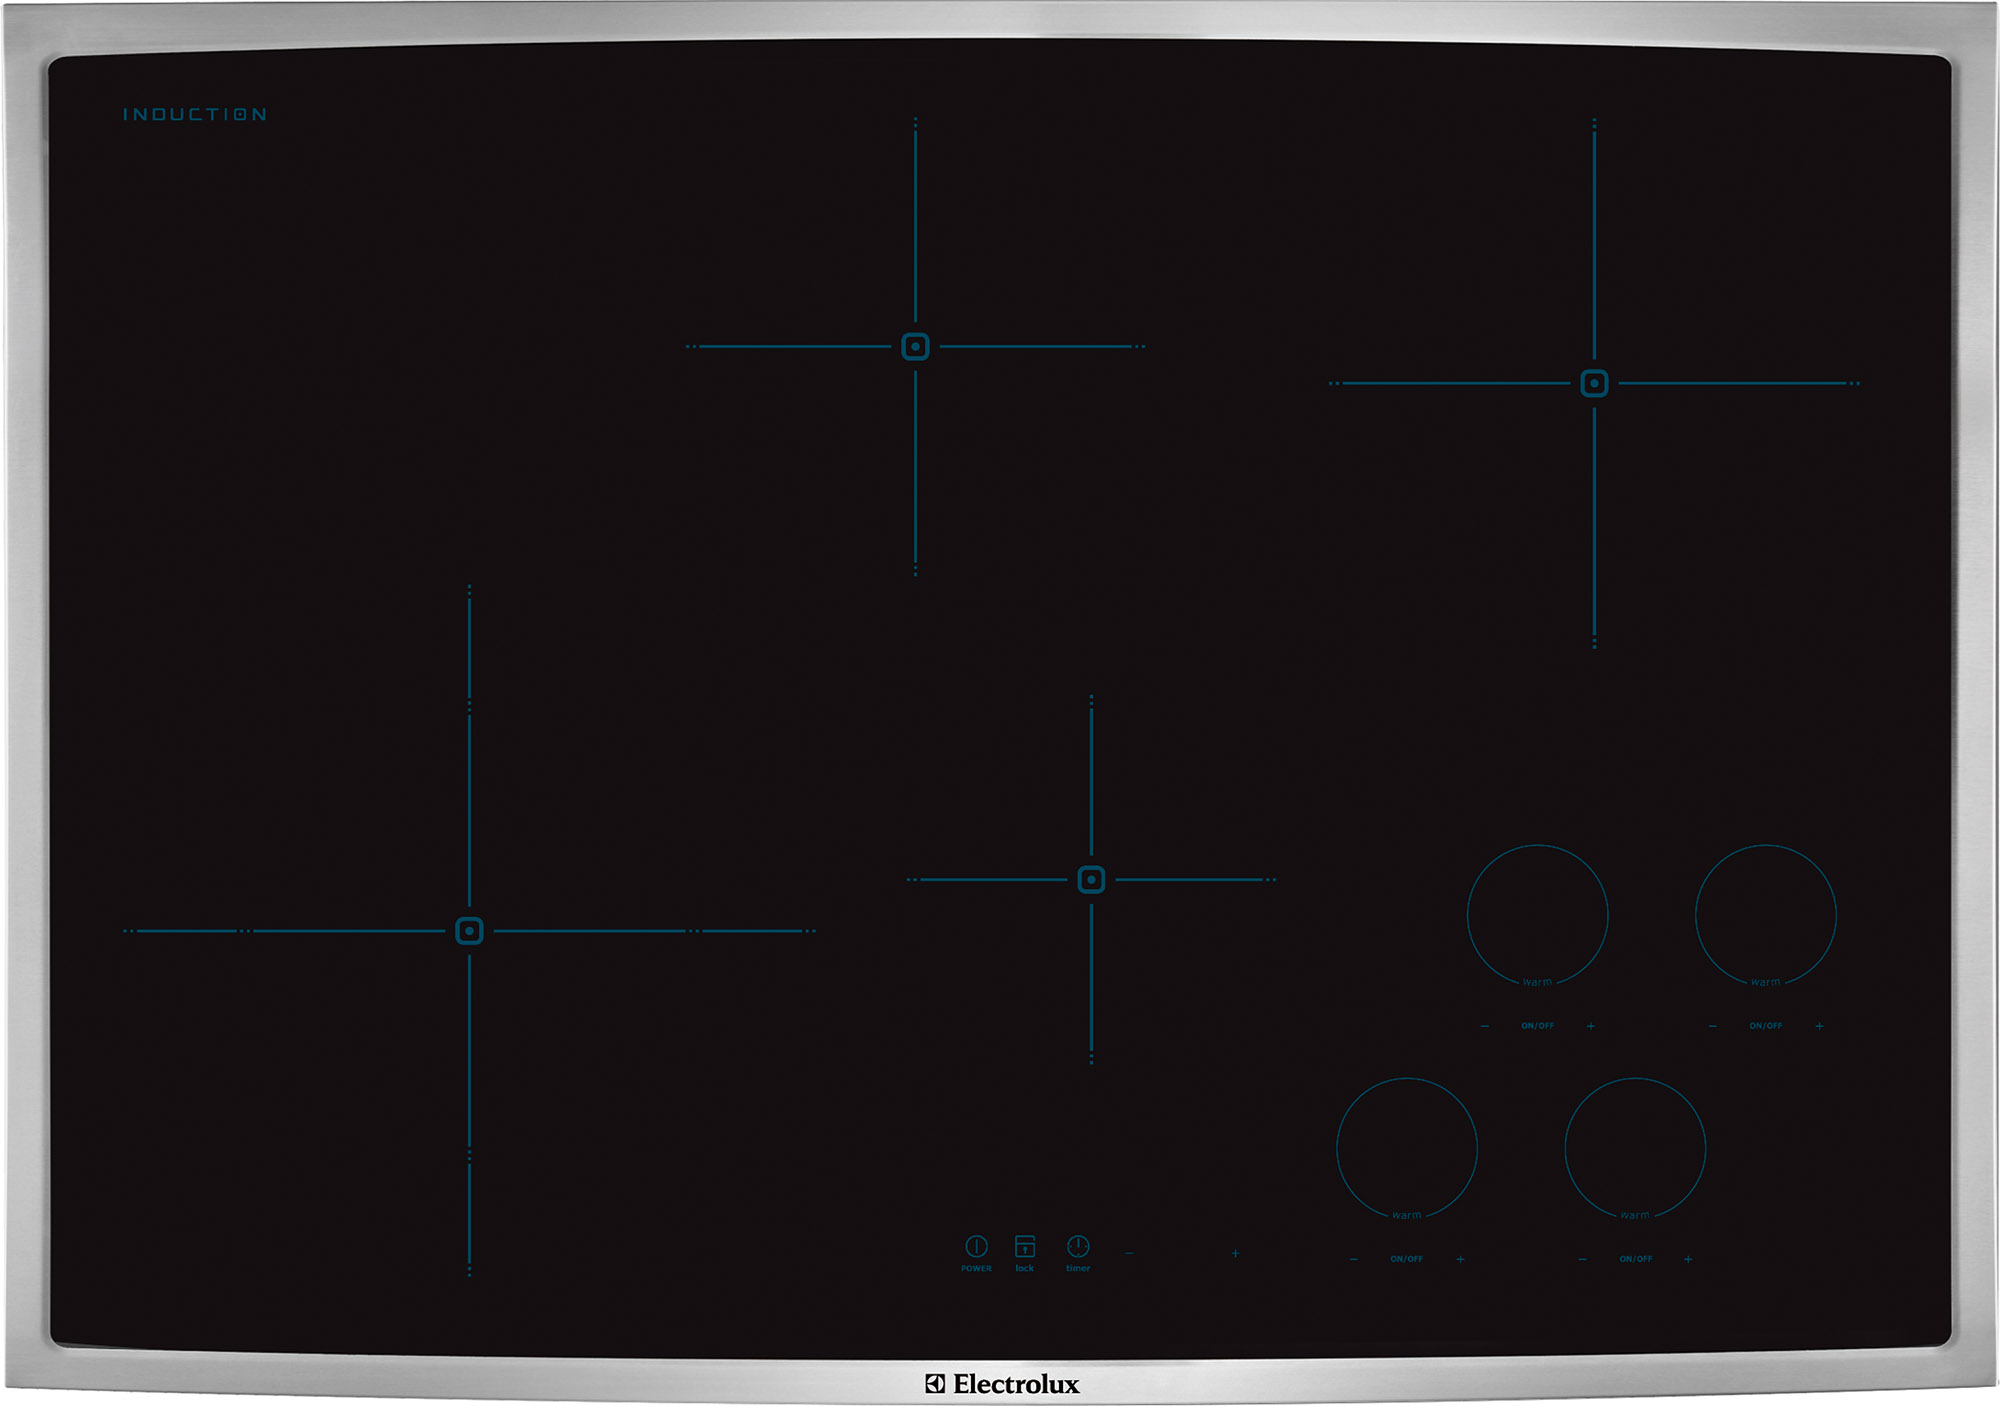 Electrolux 30 Induction Cooktop Ew30ic60l Appliances Vincennes Wall Oven Wiring Diagram Stainless Steel Ew30ic60ls